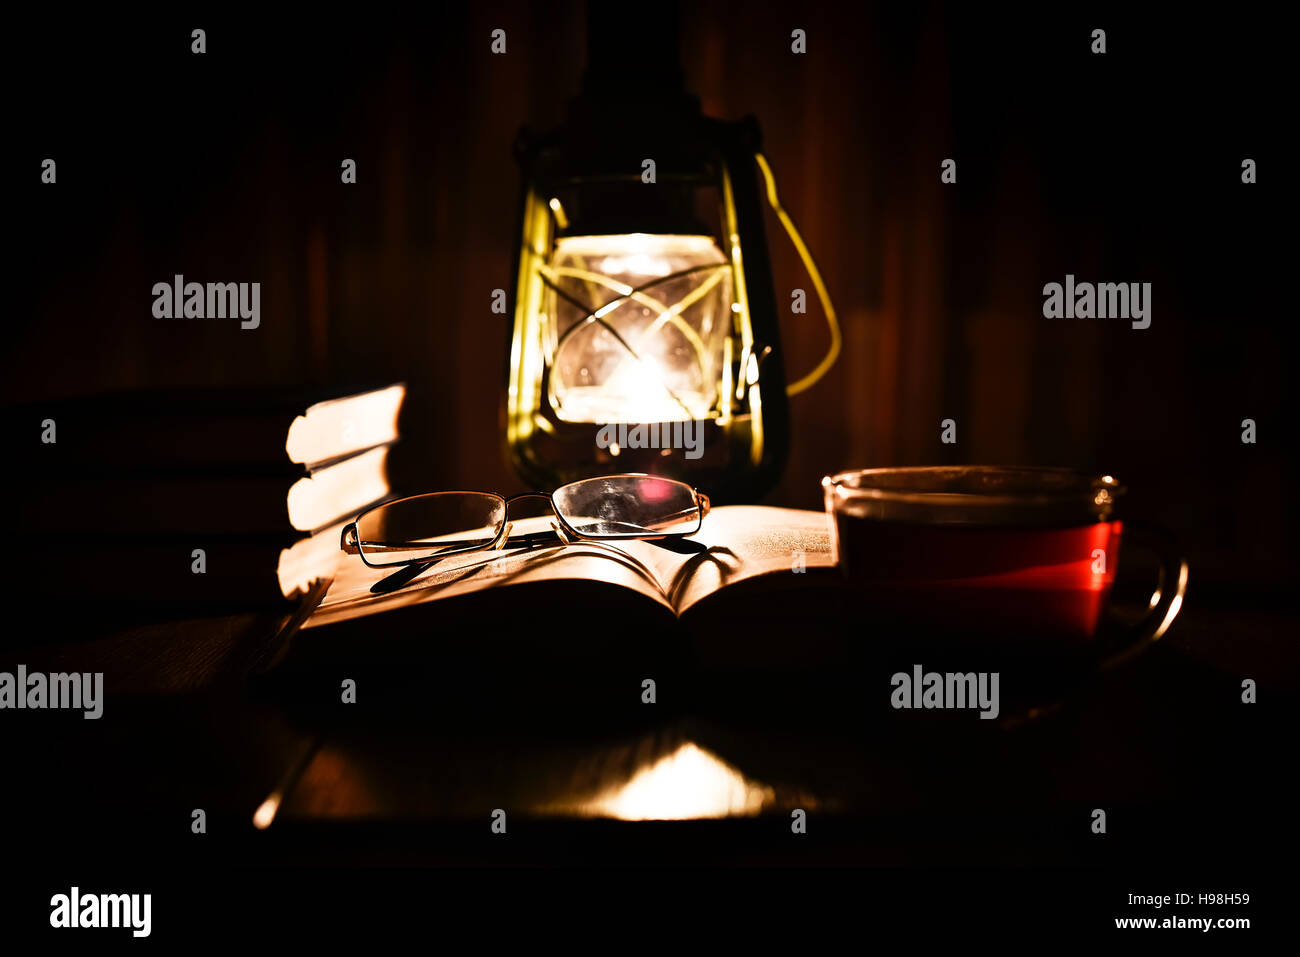 The light of a kerosene lamp and open book on the table - Stock Image